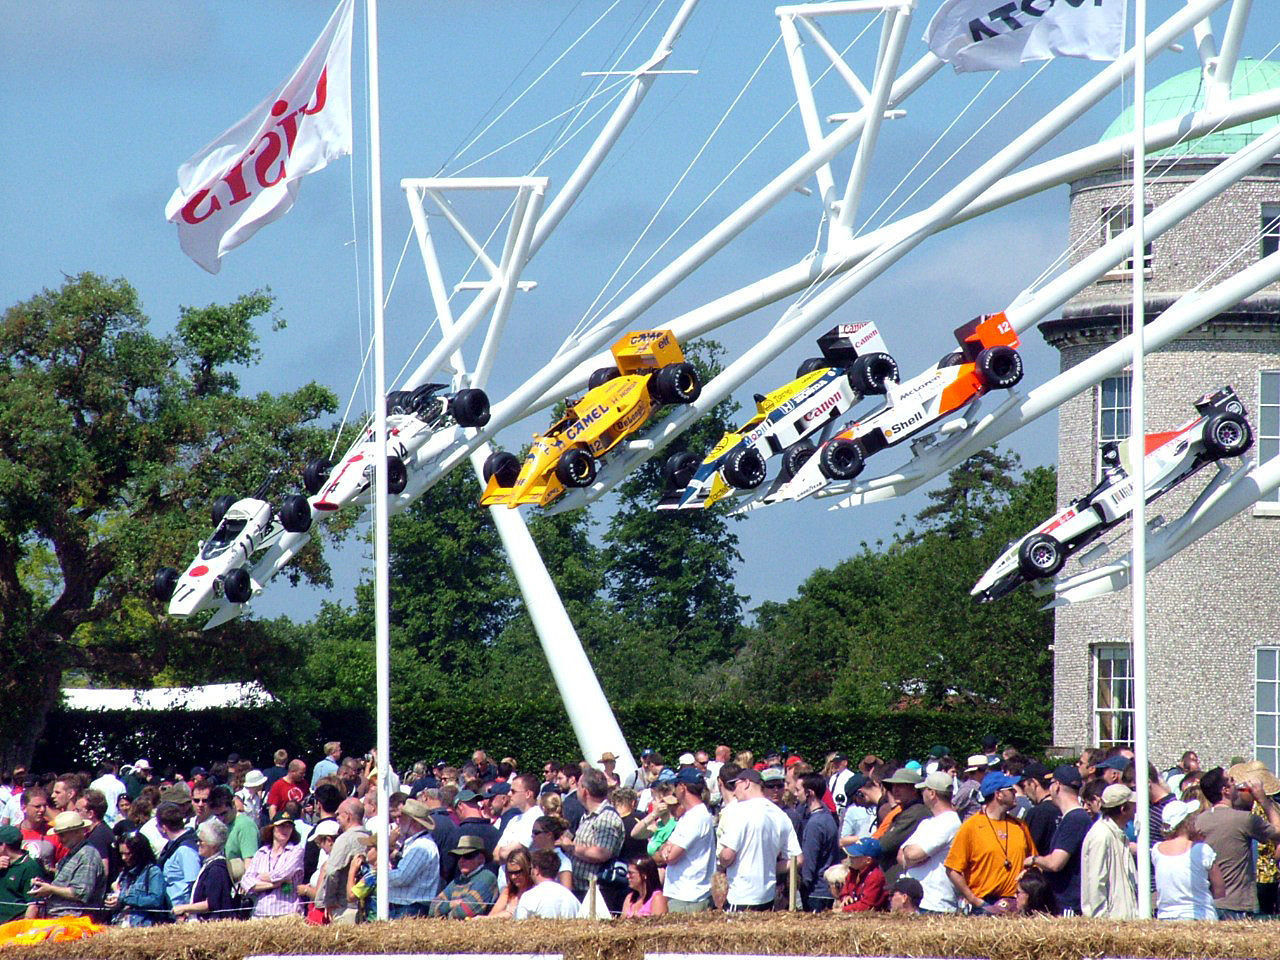 Goodwood Sculpture - Goodwood House Art & Design Art & Sculpture Art Cars Automotive Sculpture Autosport Goodwood Festival Of Speed Goodwood Festival Of Speed 2015 Goodwood FOS Goodwood House Motorsport Olympus Racing Cars Sculpture Sculpture In The Park